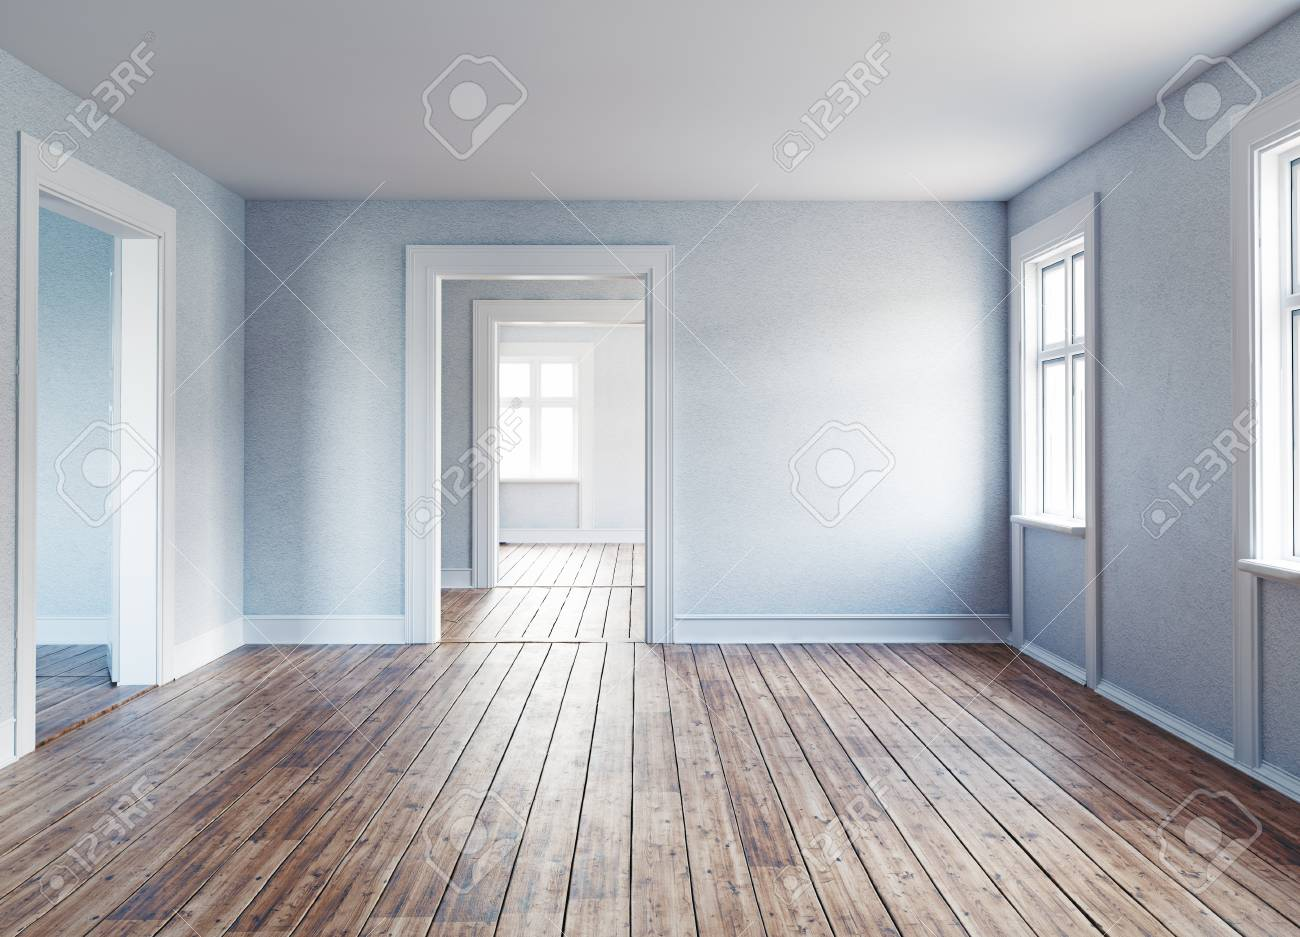 The Modern Empty Interior Rooms 3d Rendering Stock Photo Picture And Royalty Free Image Image 87846369